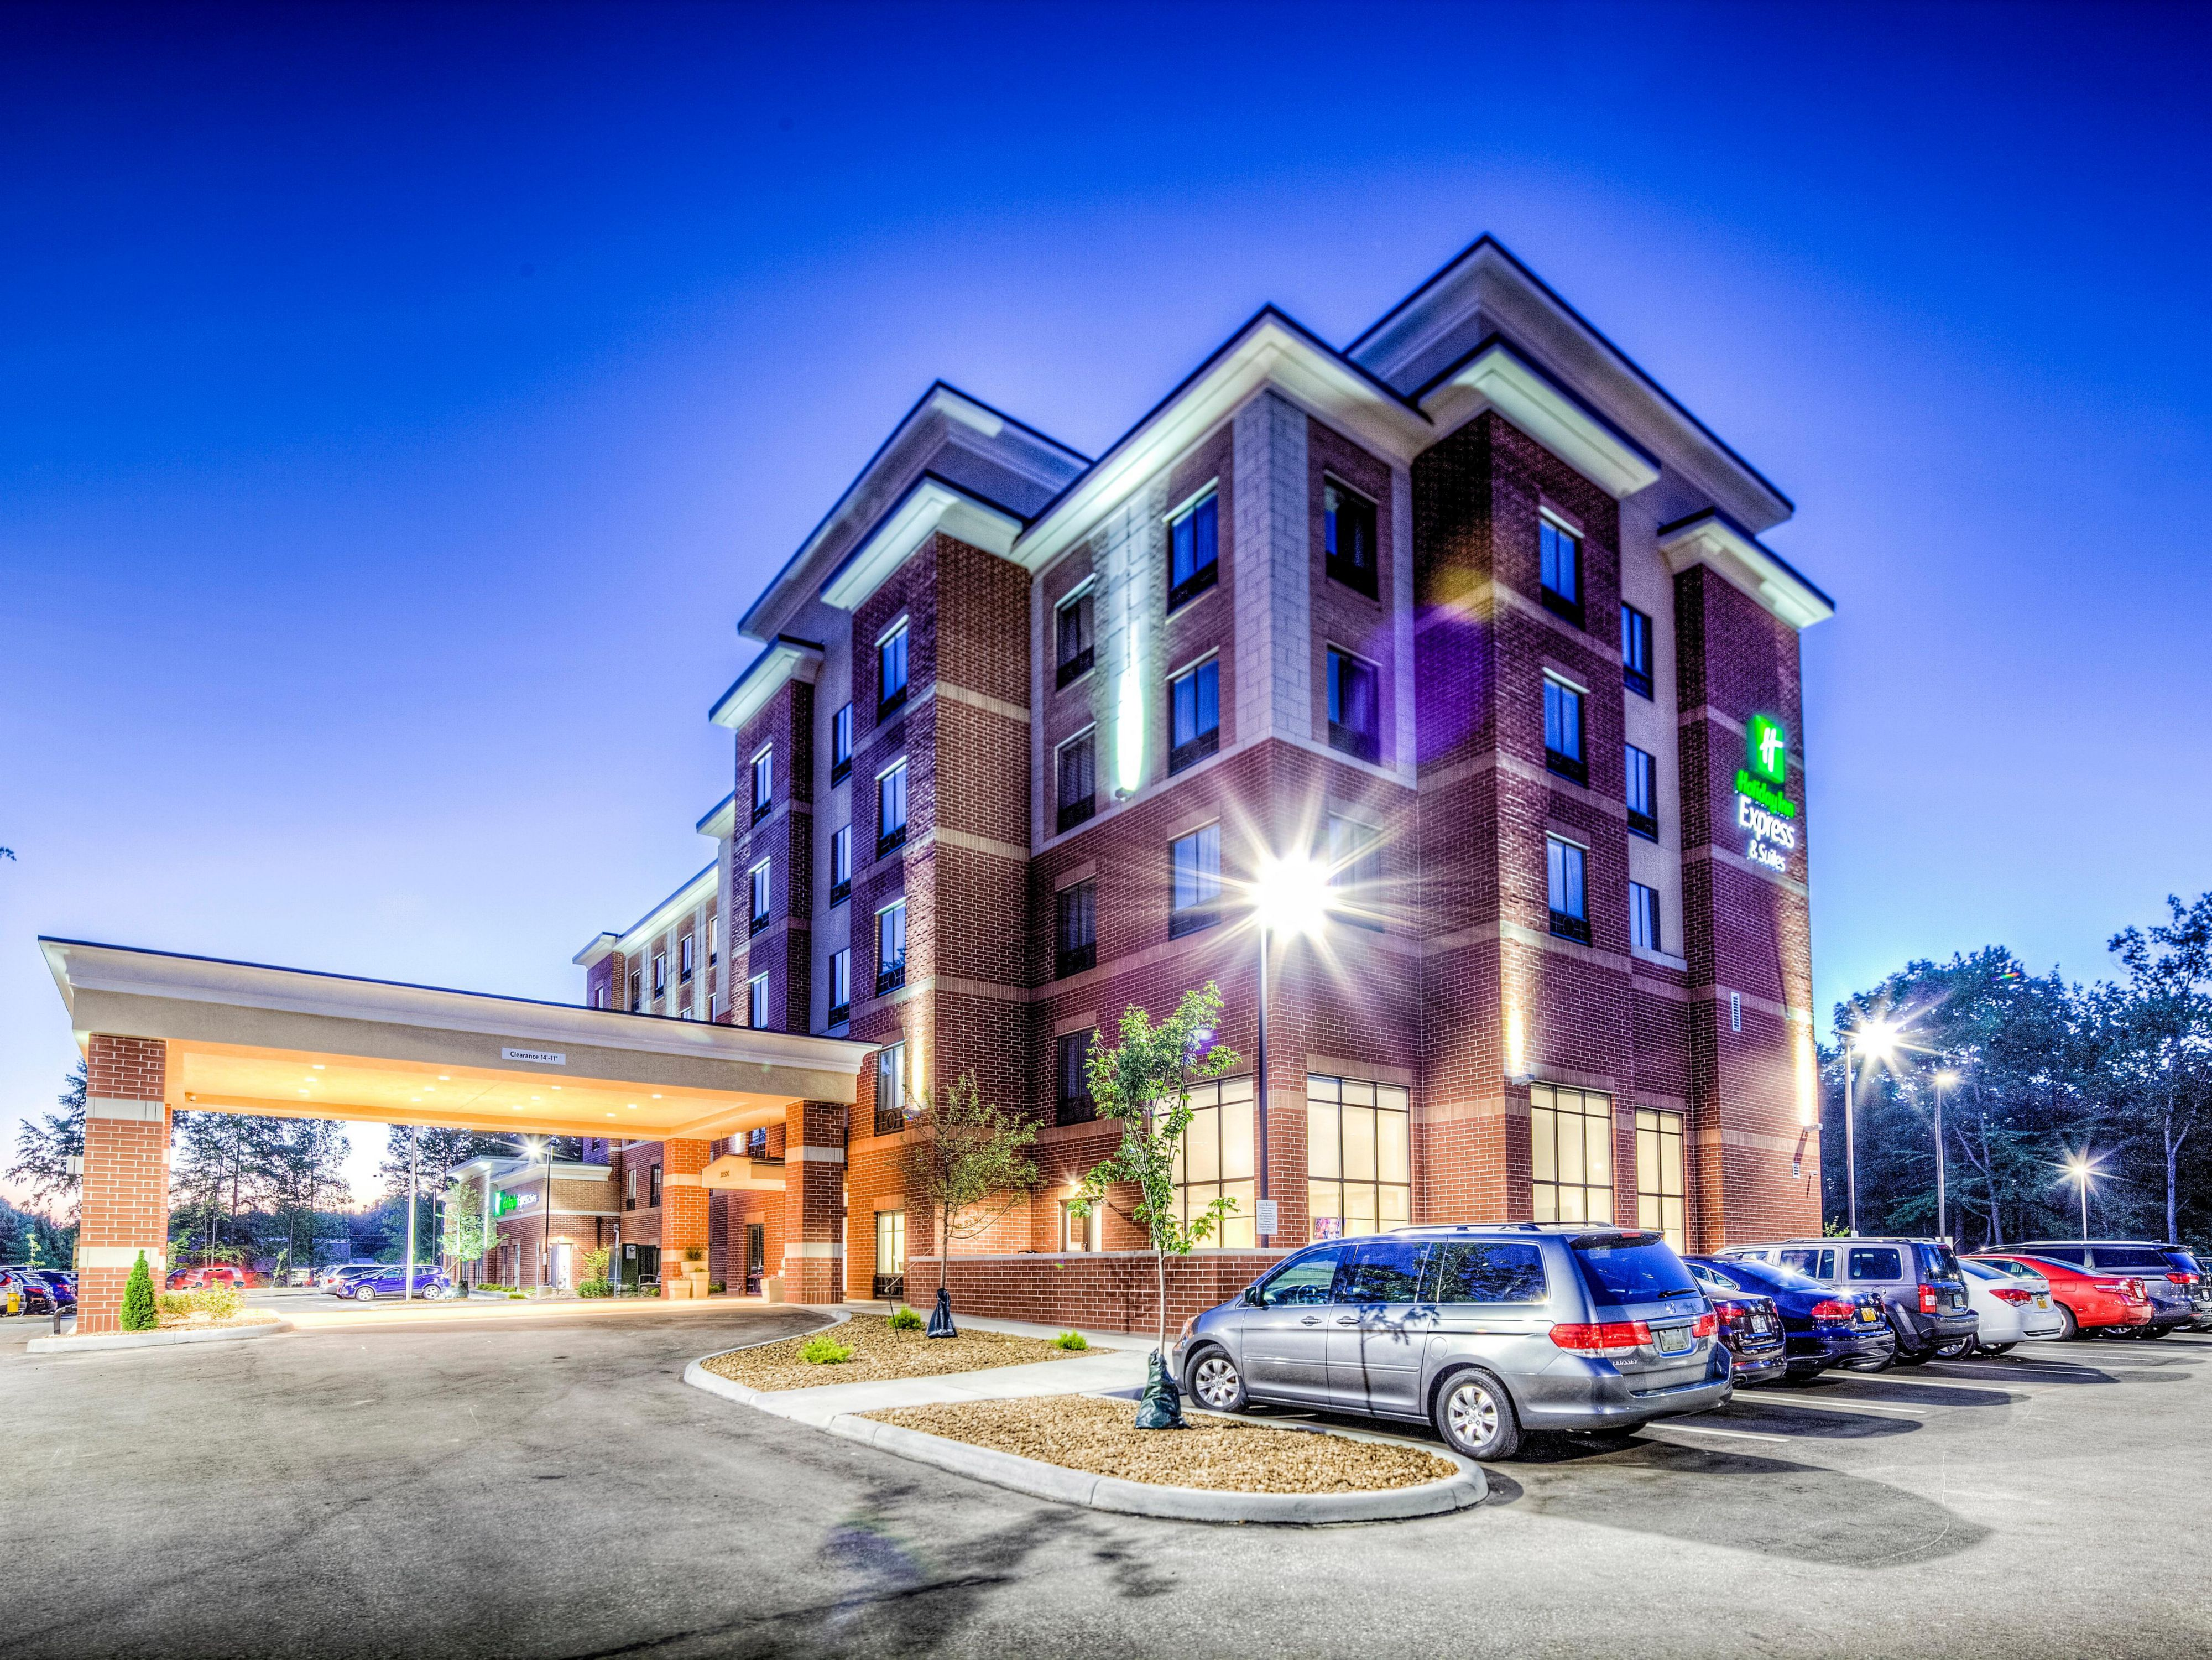 Holiday Inn Express & Suites Cleveland West - Westlake Hotel by IHG